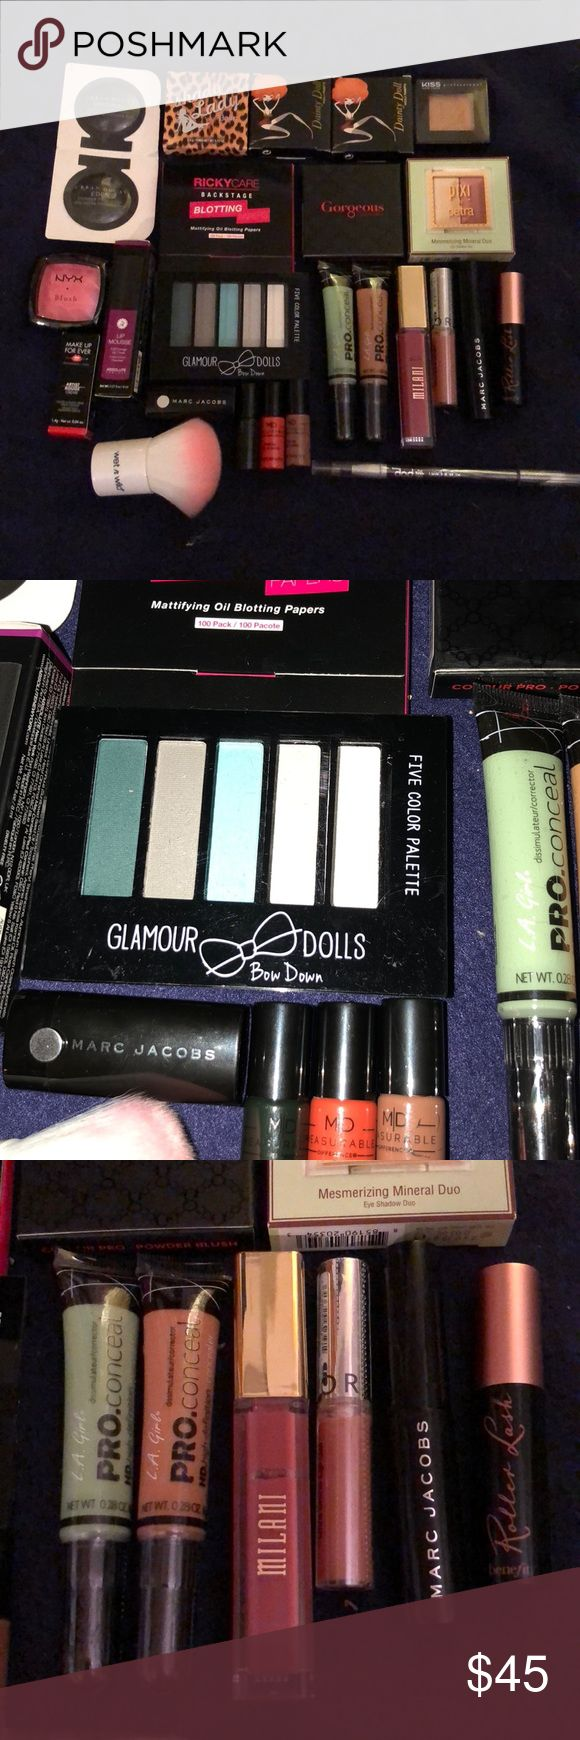 25 piece full size makeup lot bundle benefit Benefit, Marc jacobs, glamour dolls, pop cosmetics, nyx, milani, la girl, absolute ny, urban decay, the balm, pixi by petra, kiss ny. Dainty doll, Ricky care, gorgeous cosmetics, Sephora, makeup forever, measurable difference. Great to buy as a lot and break up for Christmas 🎄 gifts 🎁. Makeup